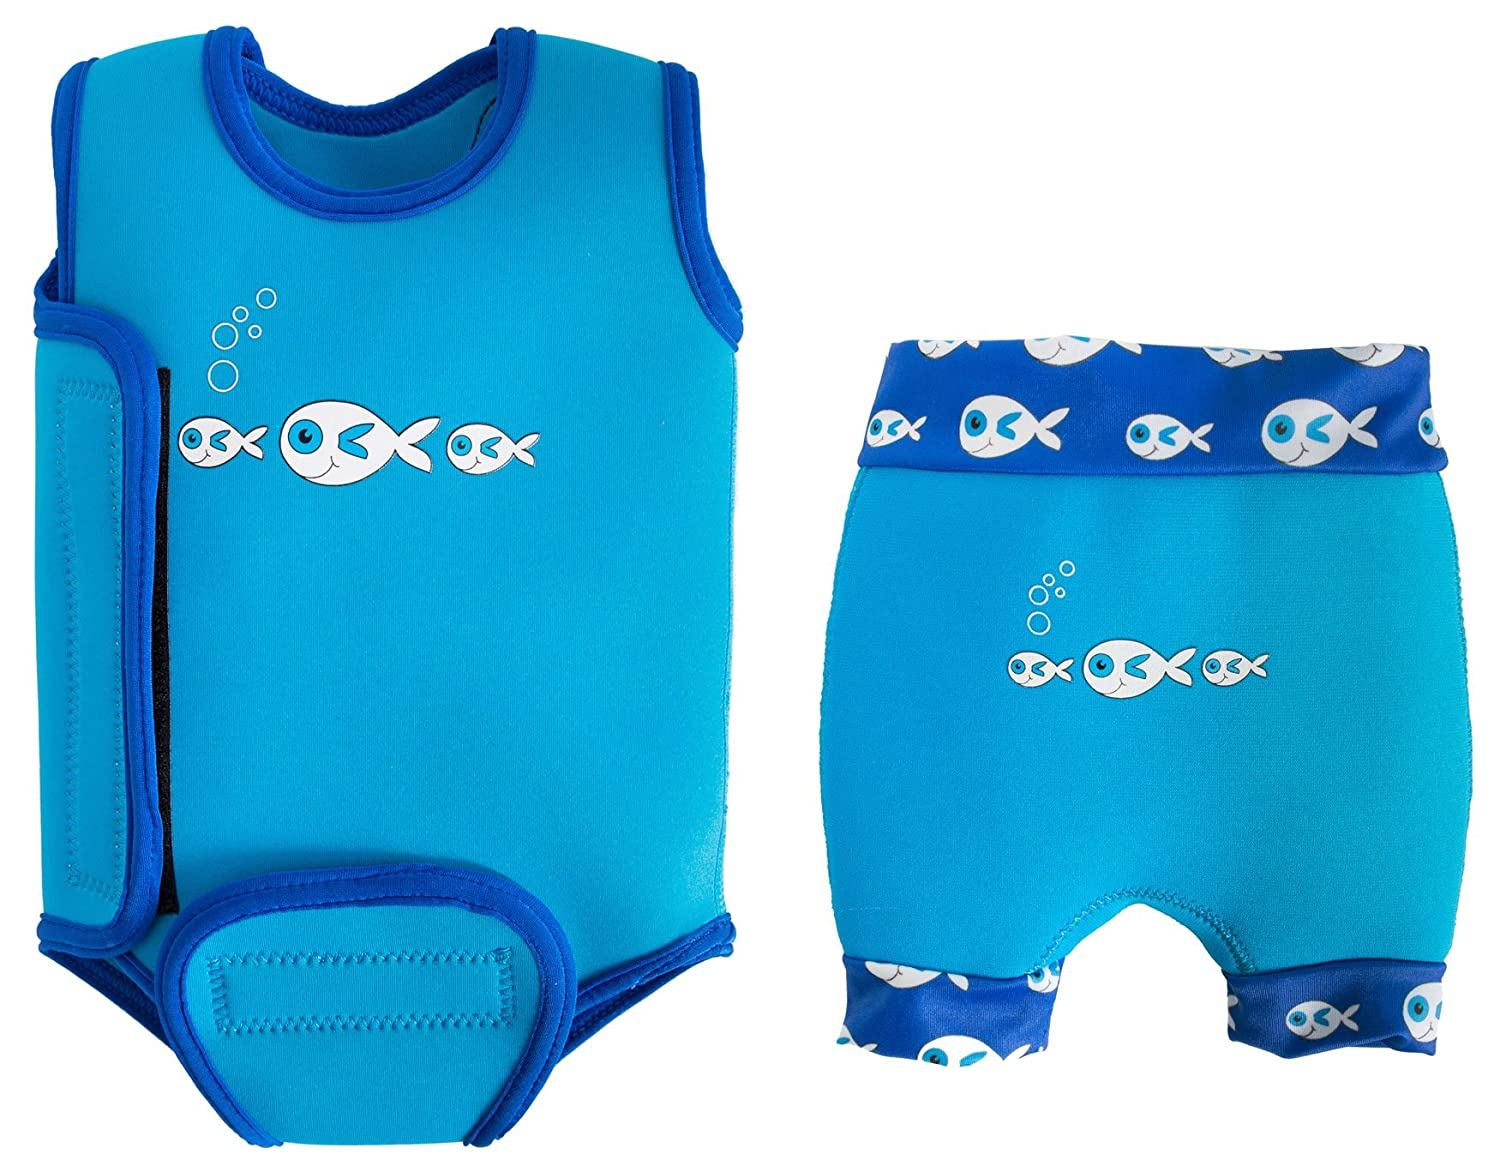 SwimBest Baby Wetsuit & Nappy Set - Blue/Lime-6-12 mths/6-8 kgs Swimbest Ltd